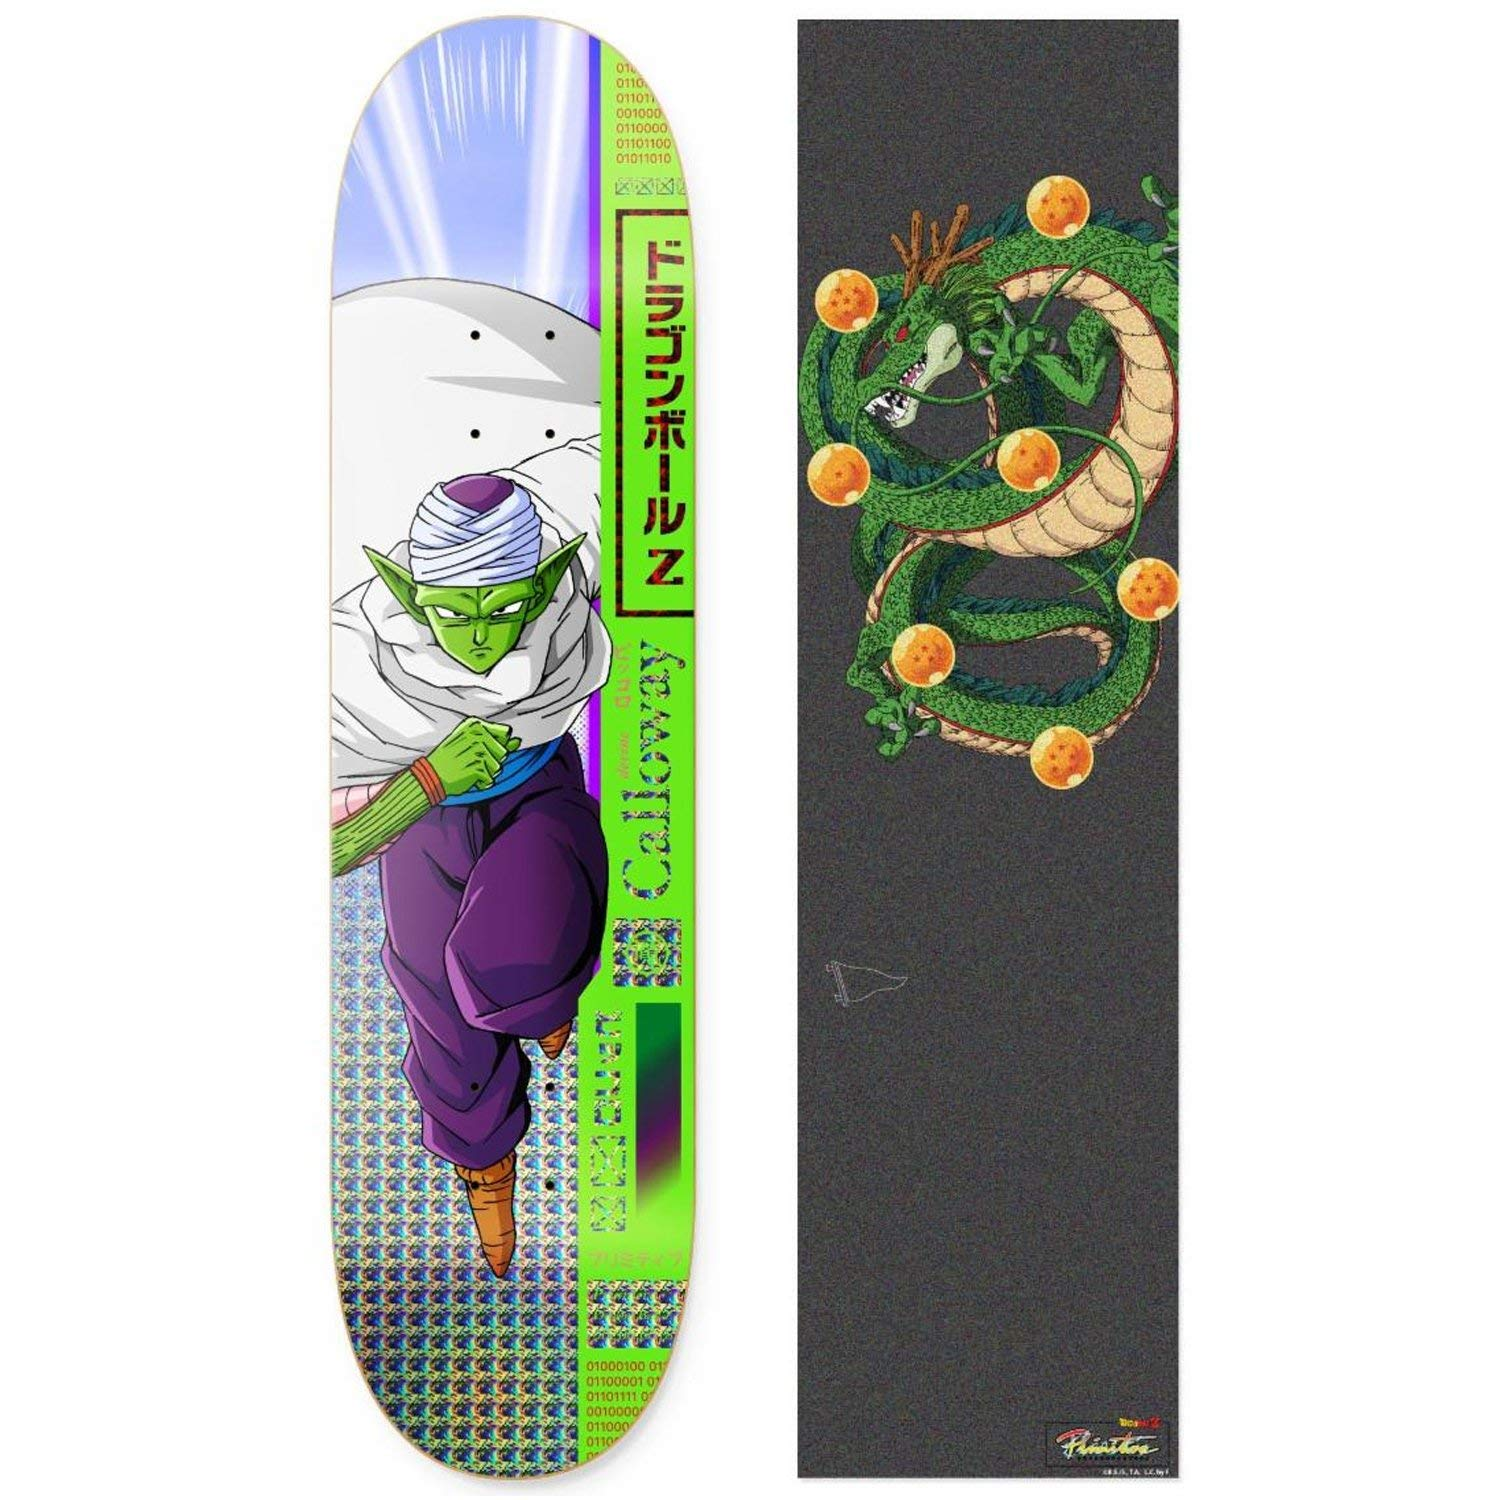 "Primitive Dragon Ball Z Calloway Piccolo Skateboard Deck 8.0"" w Shenron Griptape"